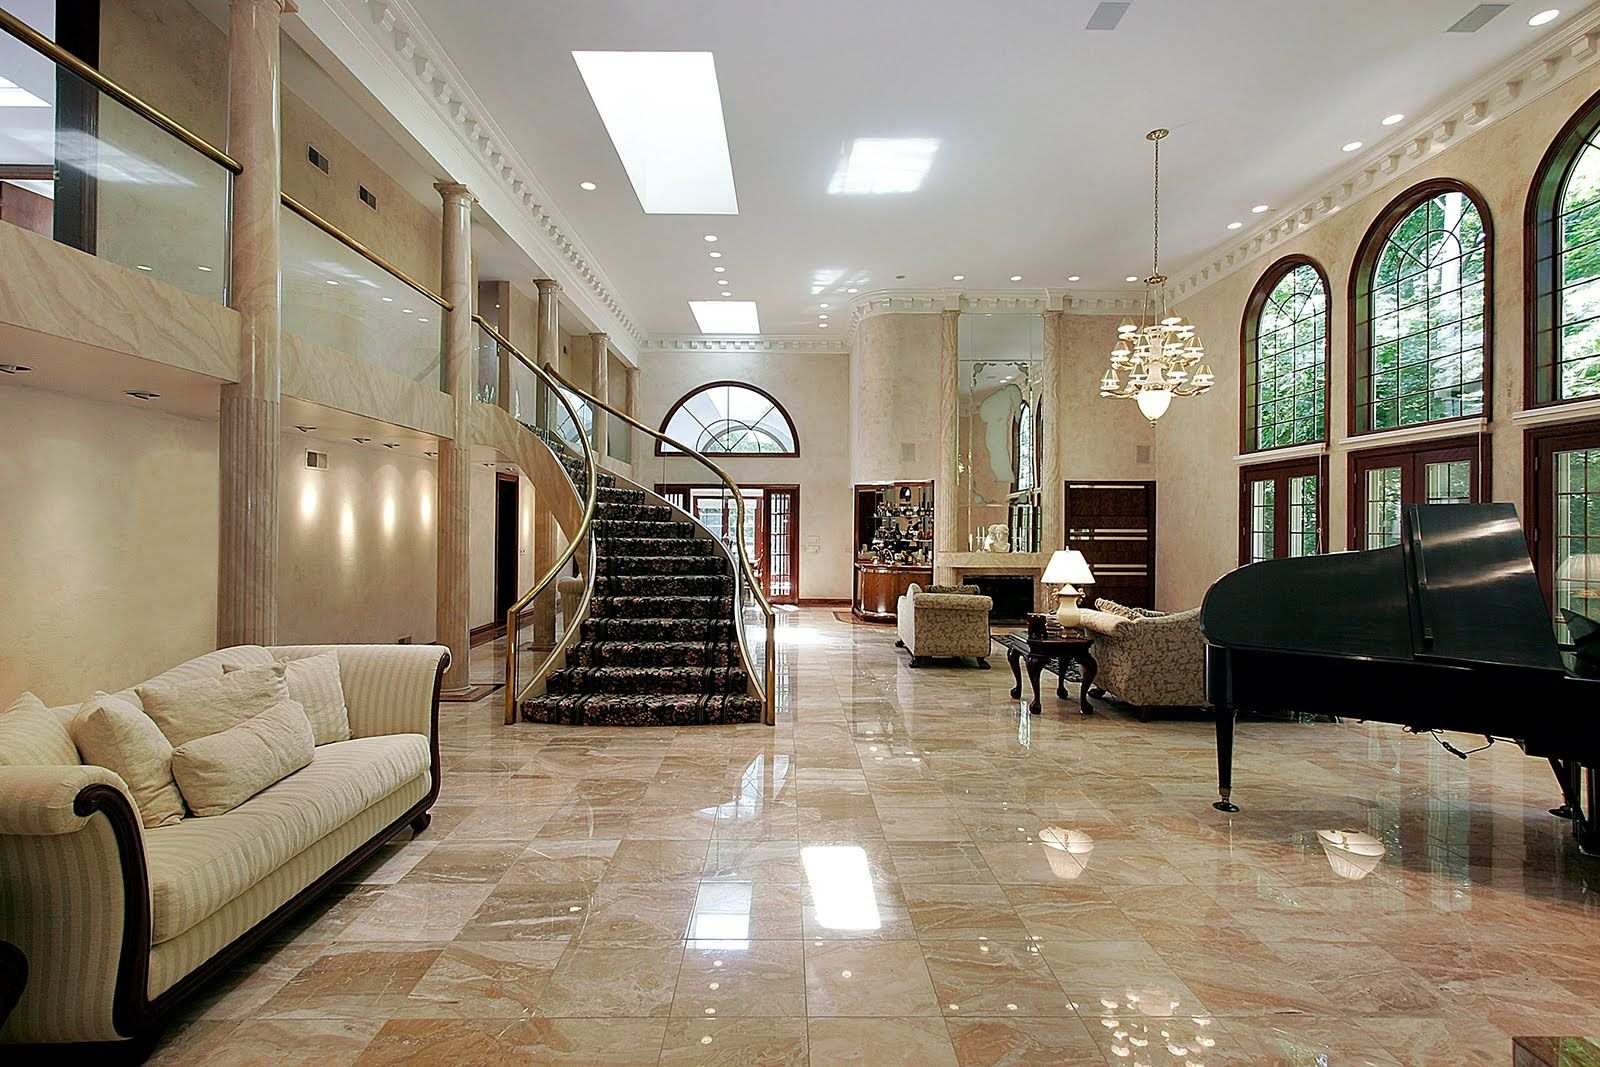 Roman Interiors With Italian Marble Flooring In Interior Marble     Roman Interiors With Italian Marble Flooring In Interior Marble Flooring  Interior Marble Floors Pros And Cons